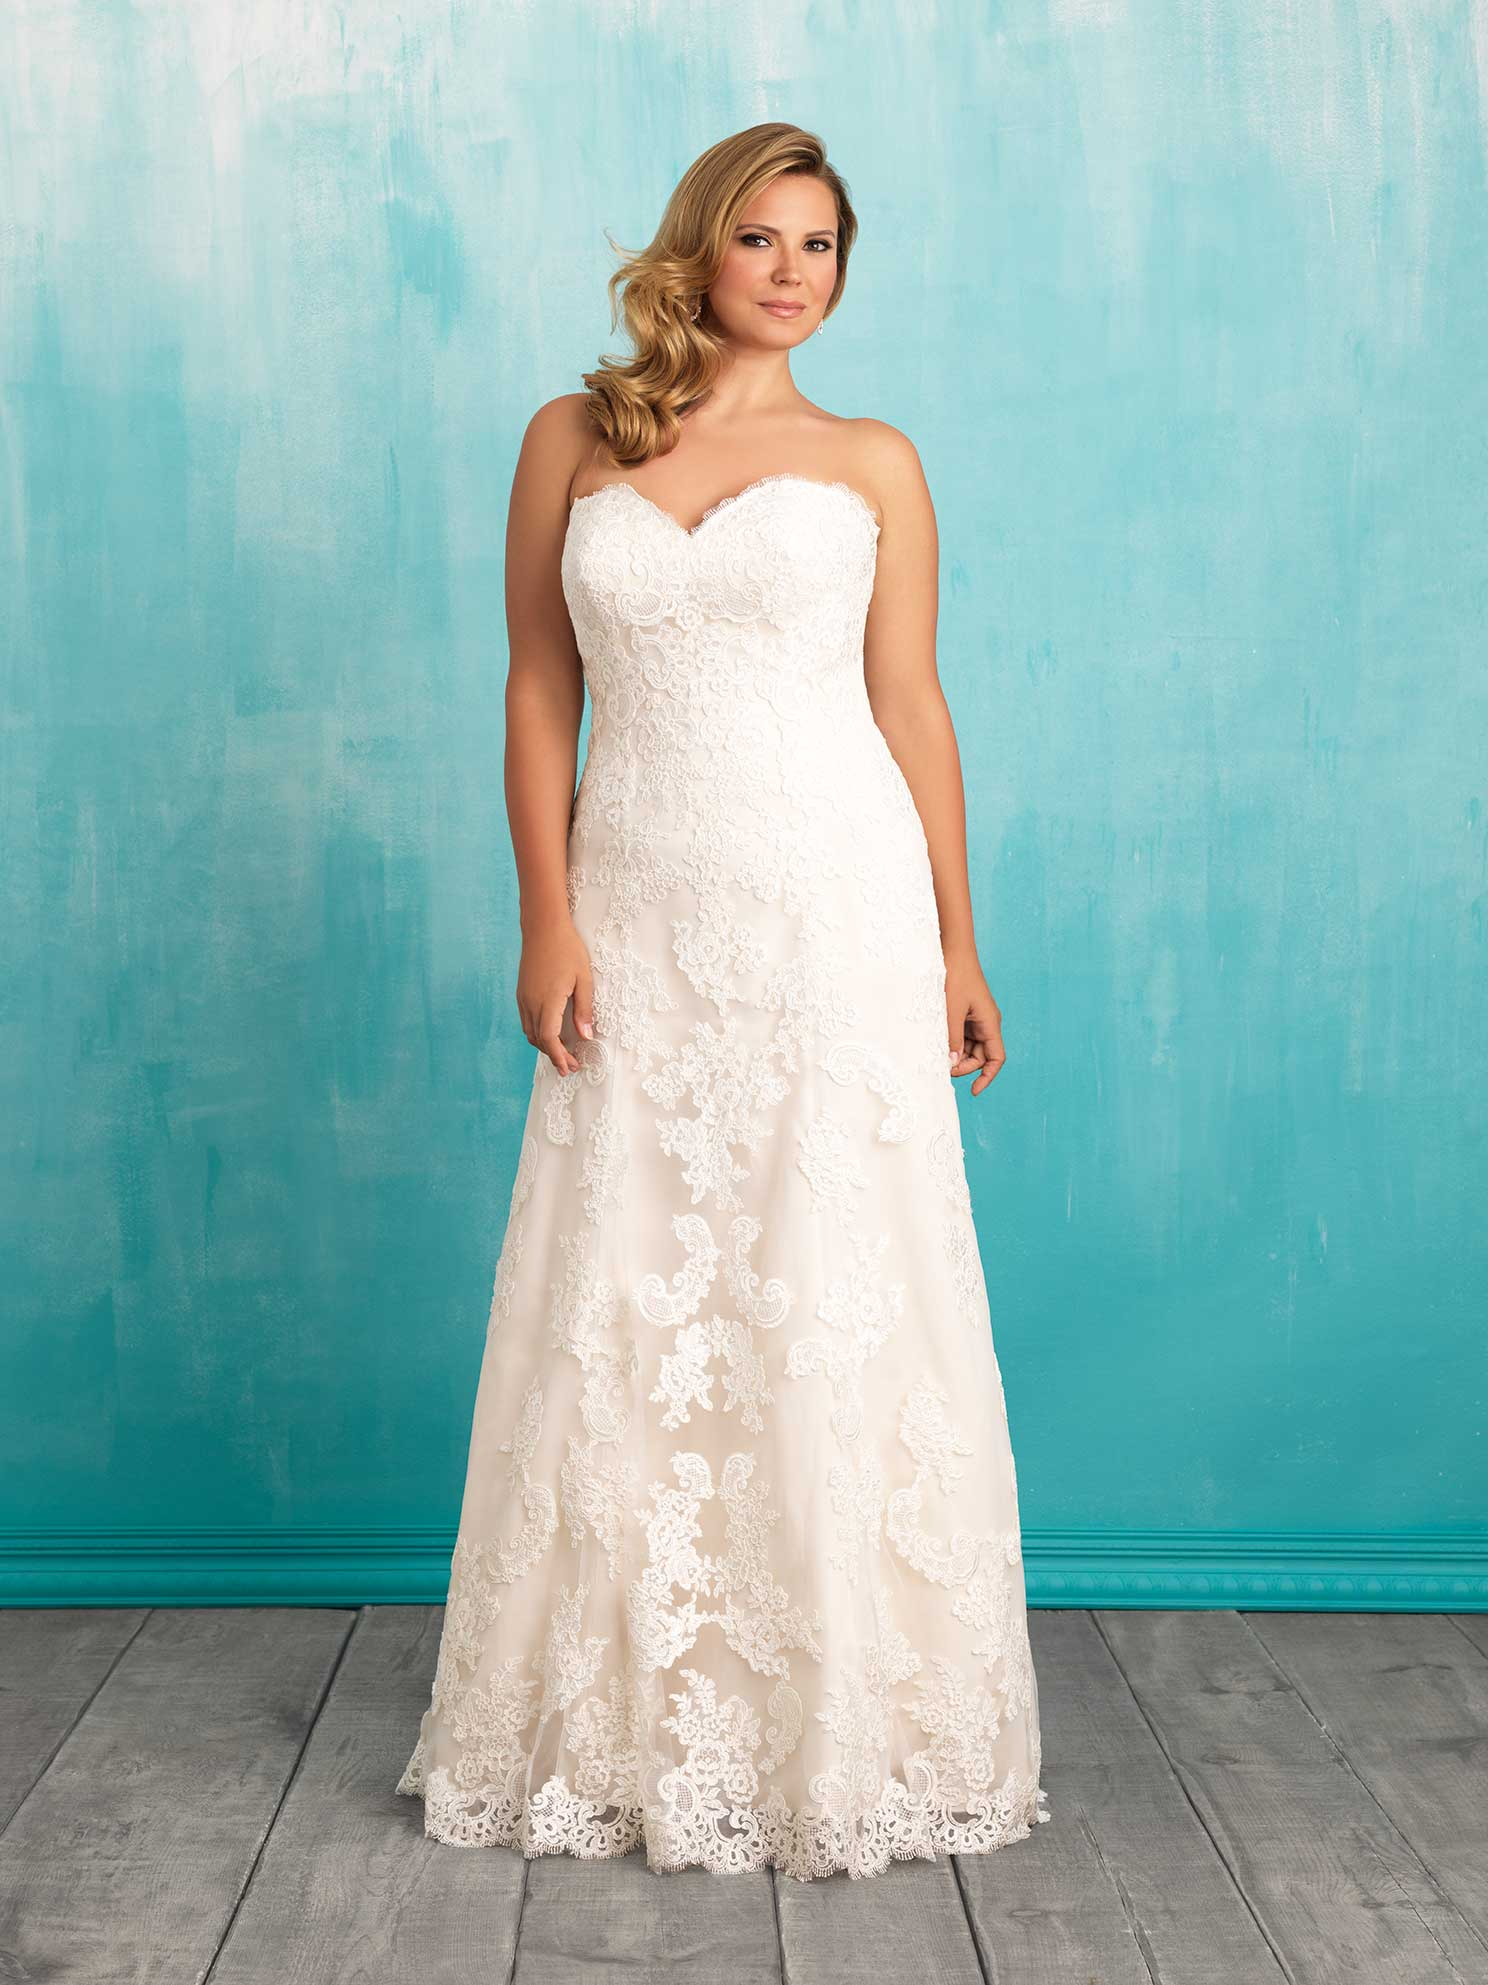 W370 by Allure Bridal from Lori G Derby